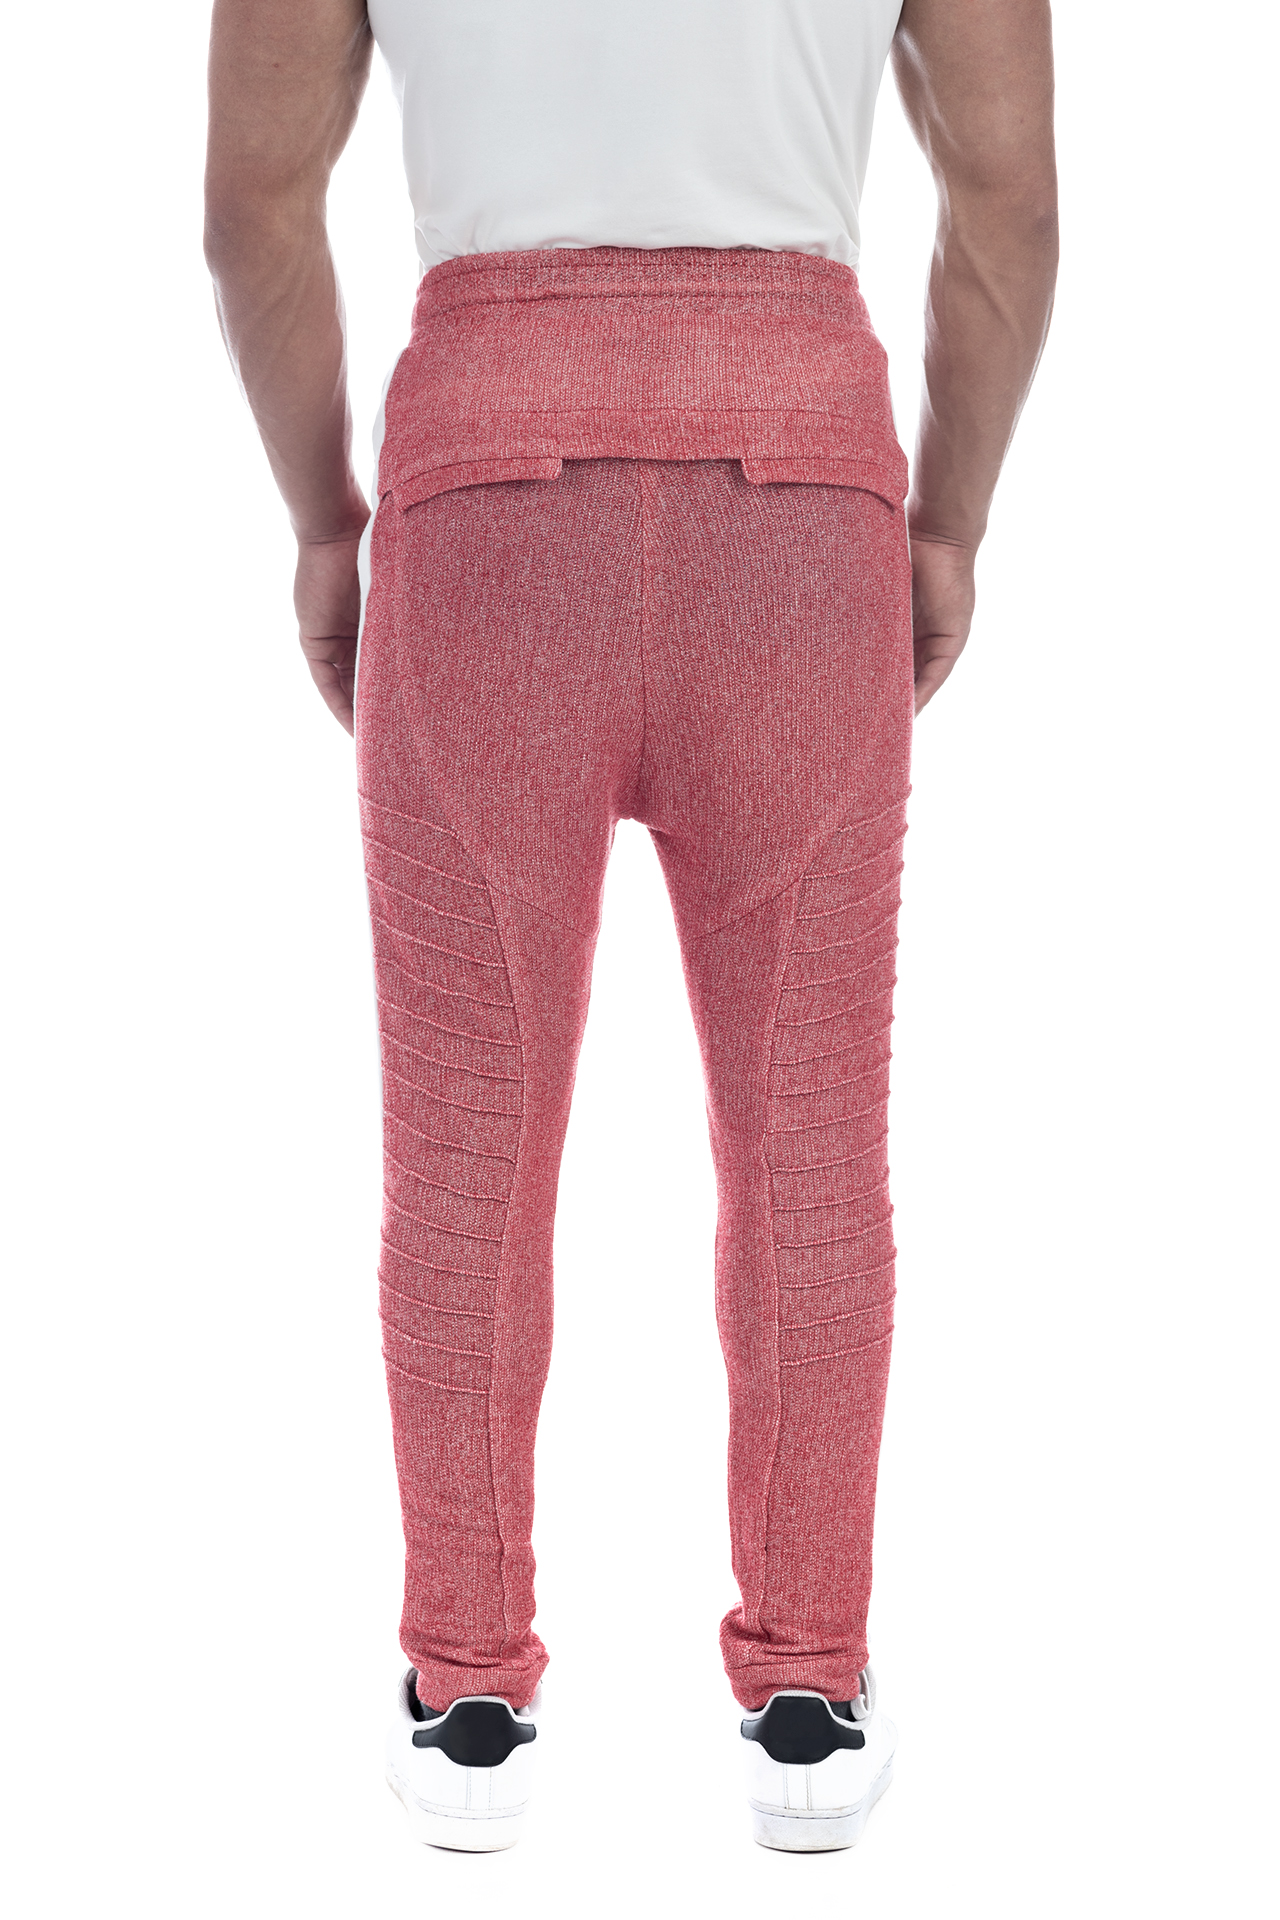 FRENCH TERRY PANT RED 3